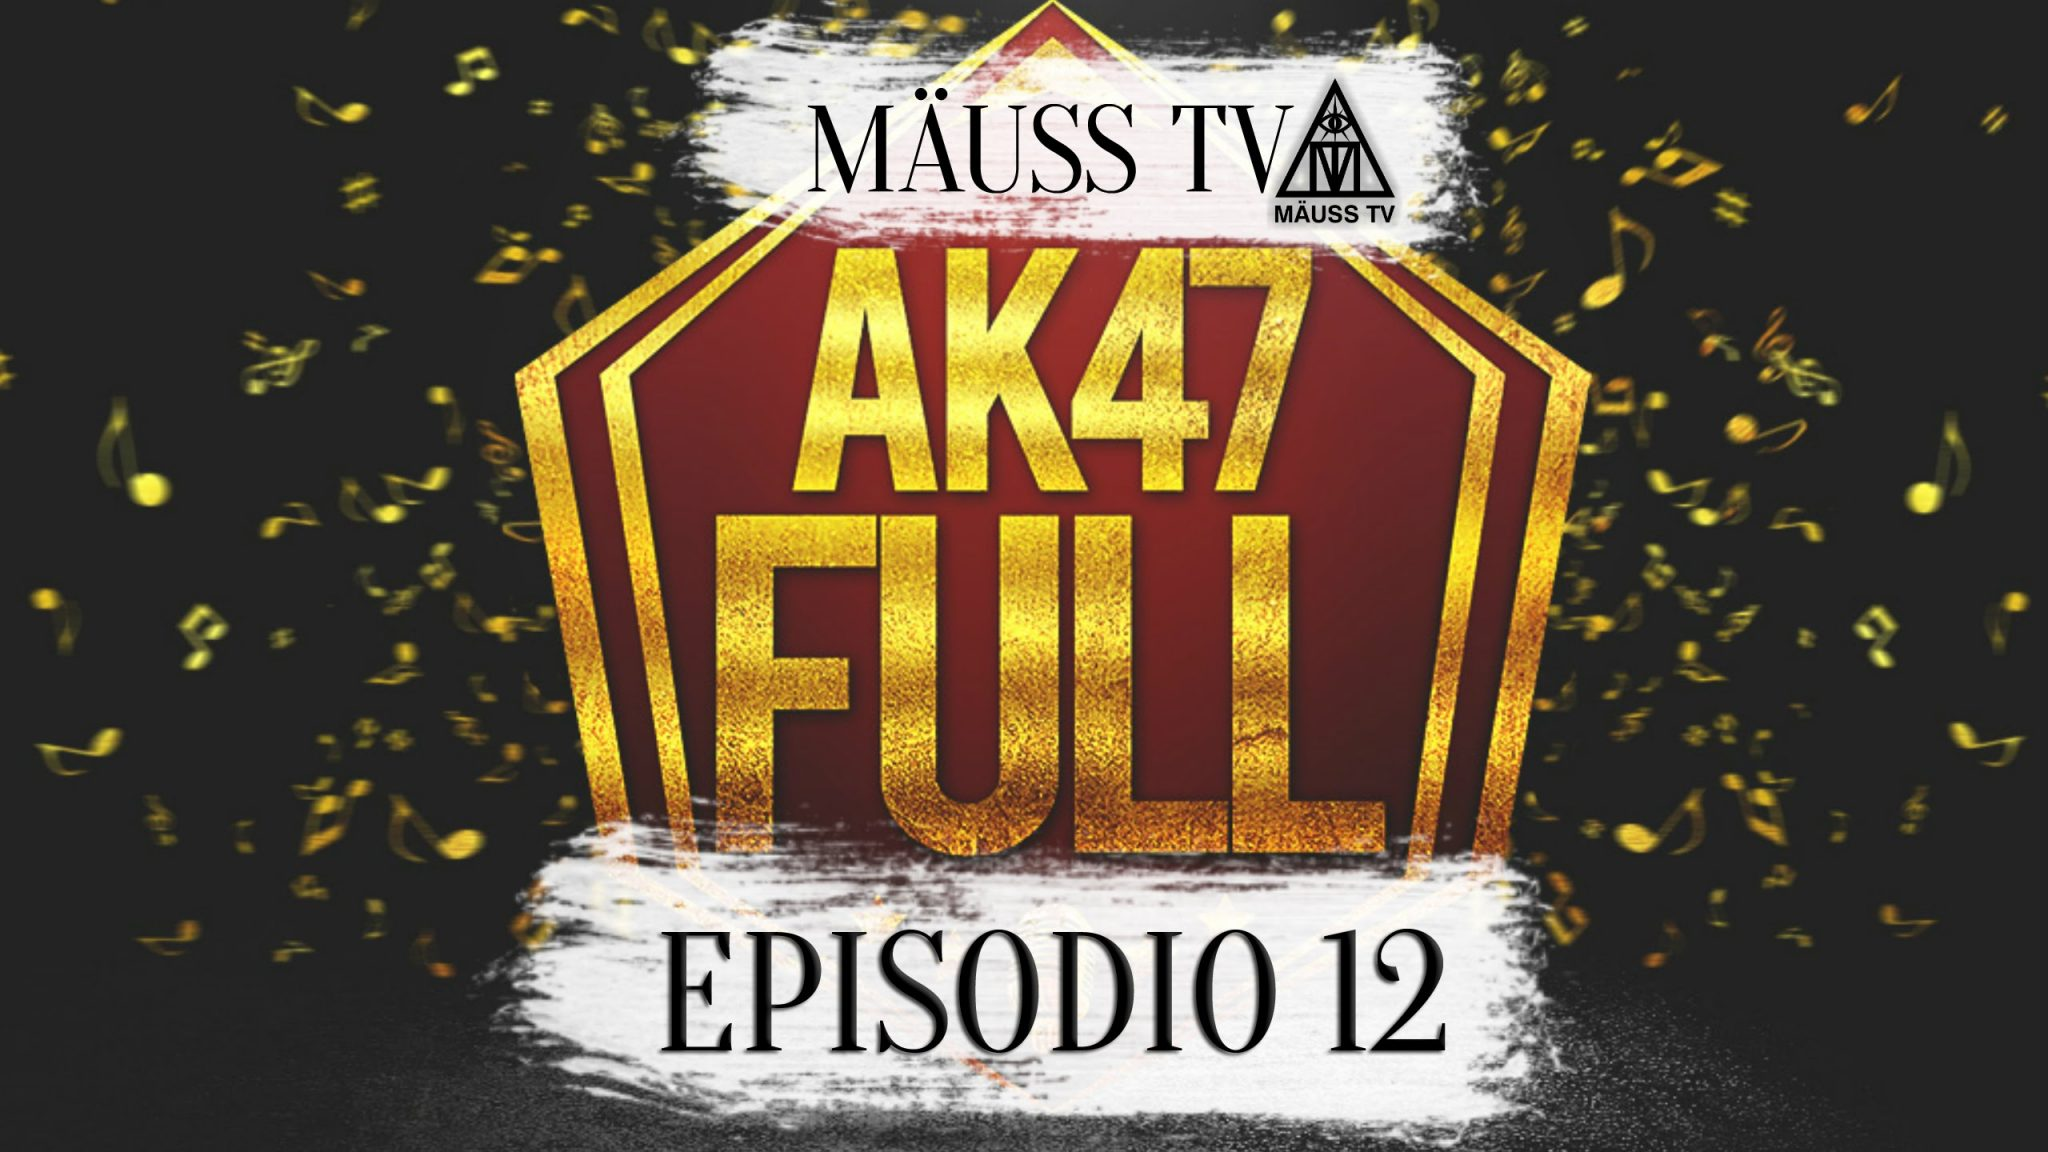 mauss tv episodio 12 noticias y - Mäuss TV – Episodio 12 (Noticias Y Estrenos)